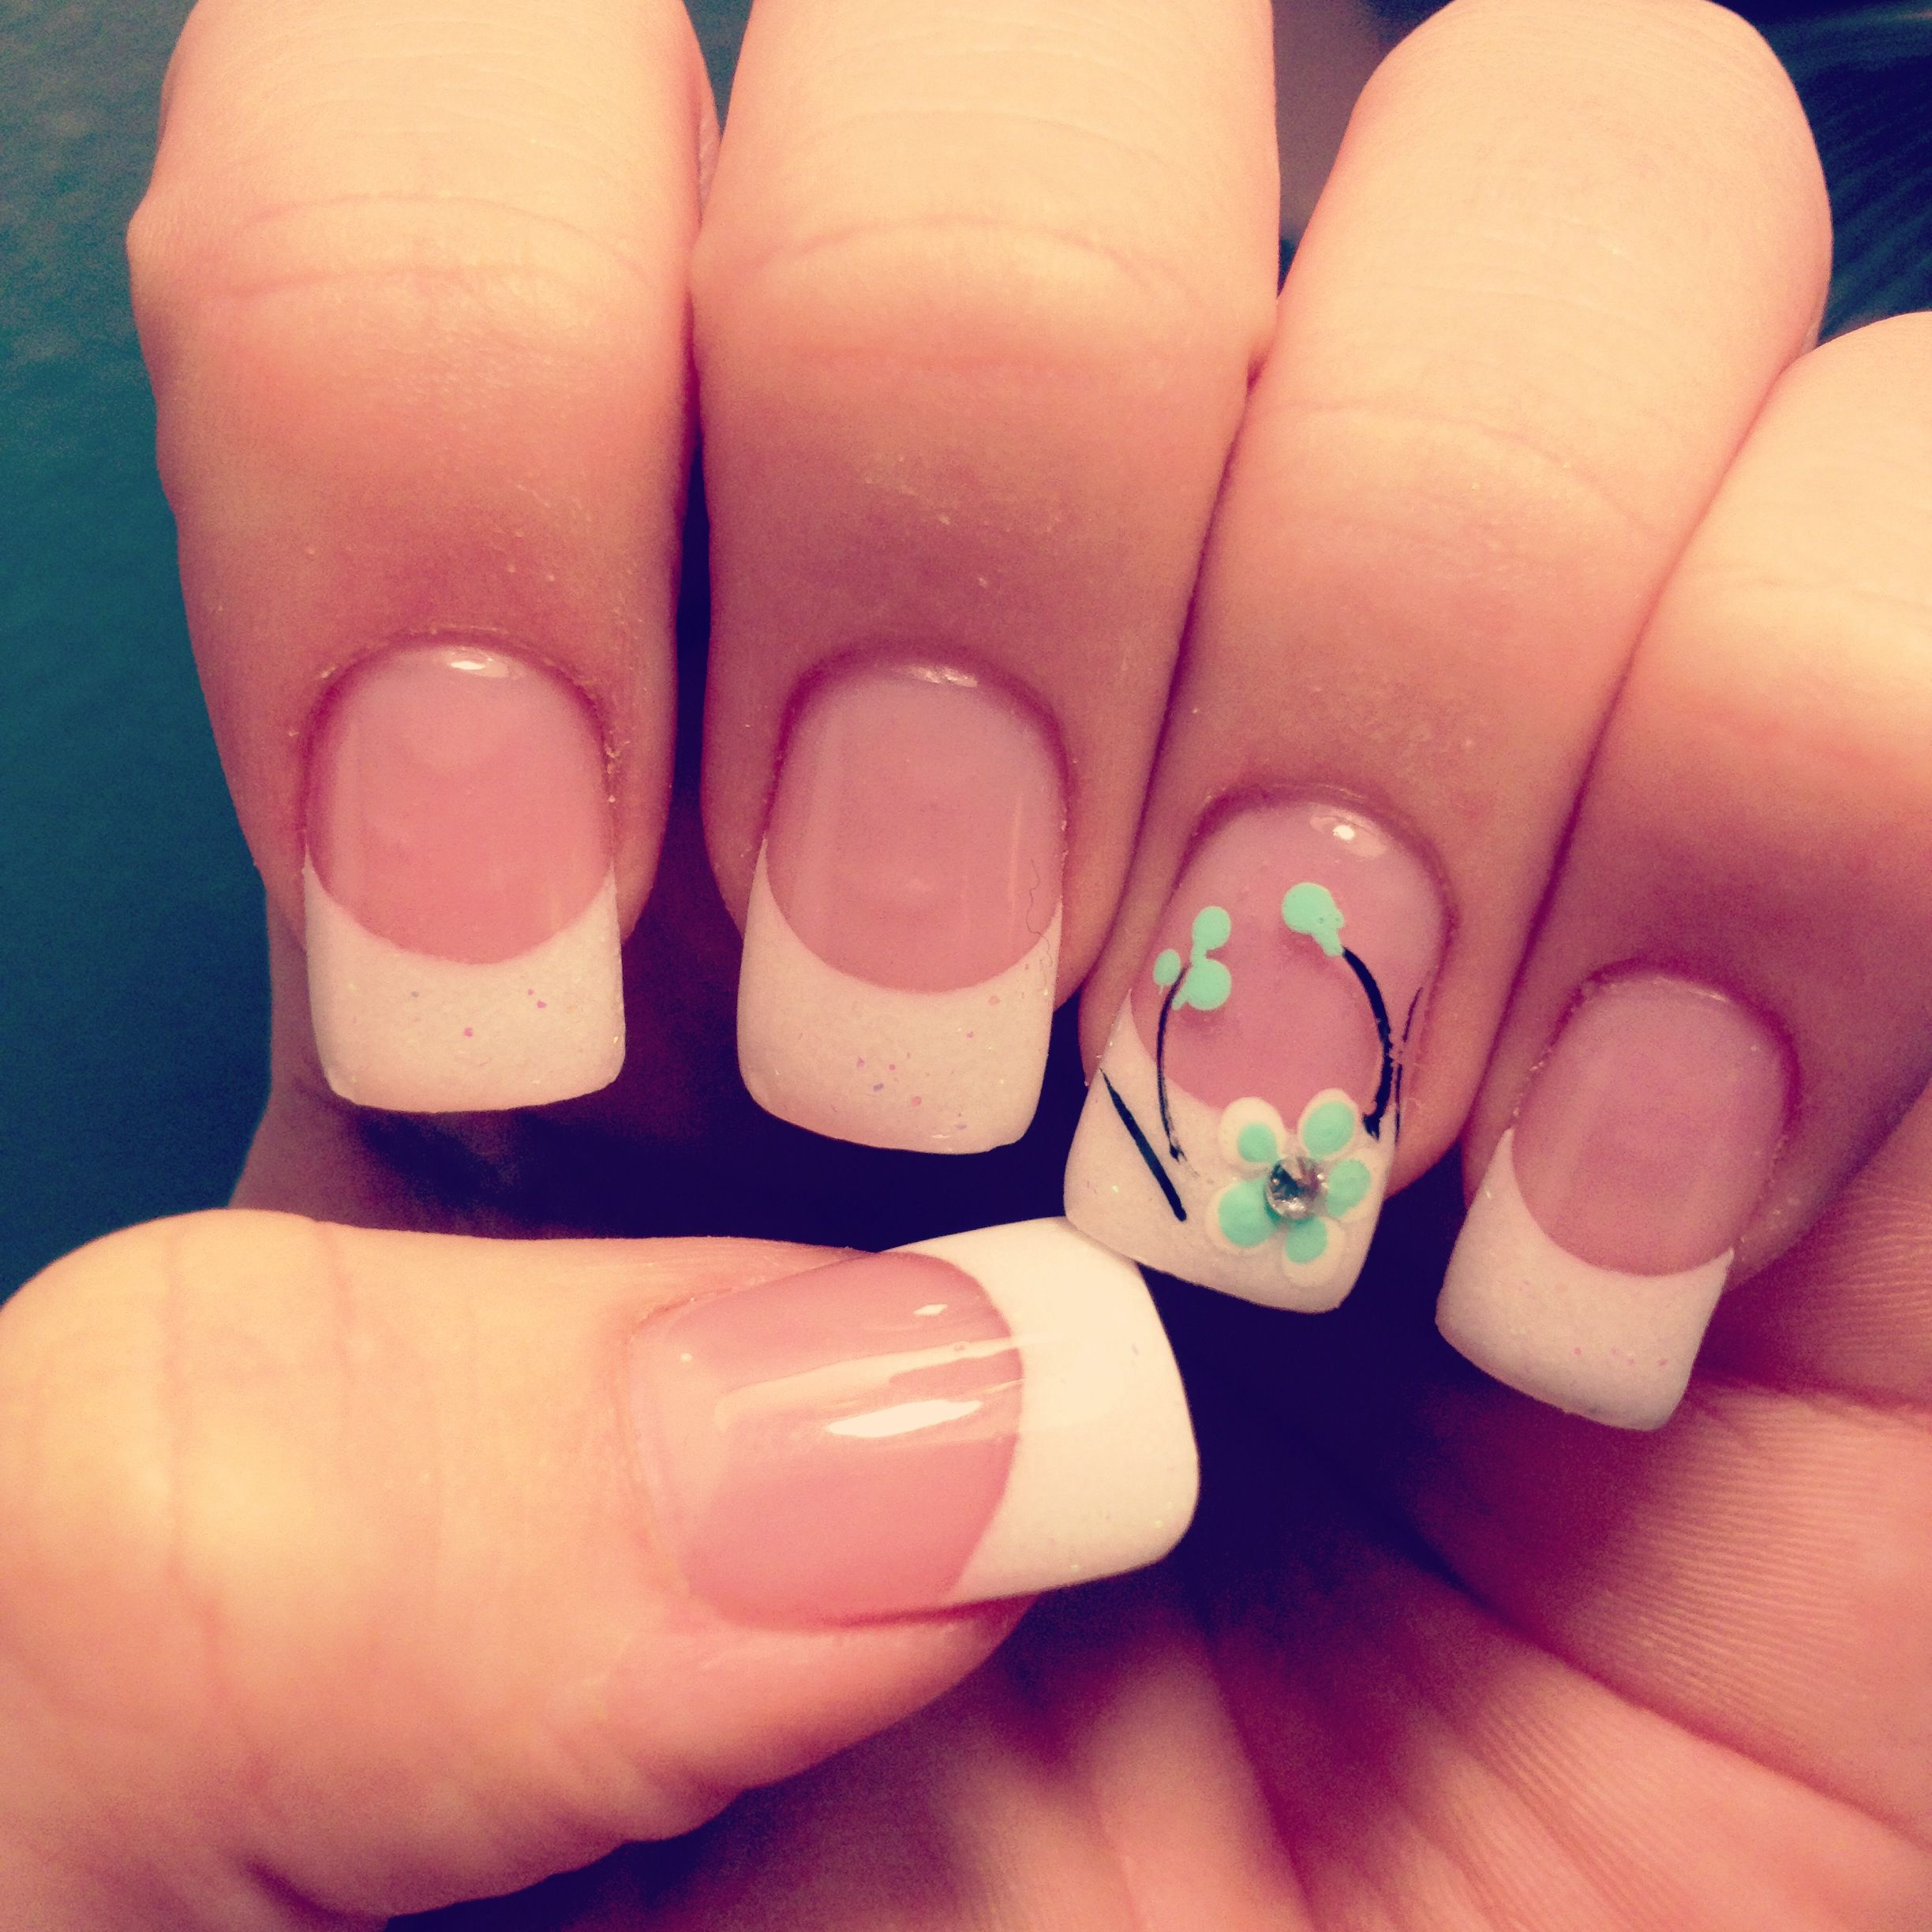 French manicure with accent nail | Nails | Pinterest | Accent nails ...